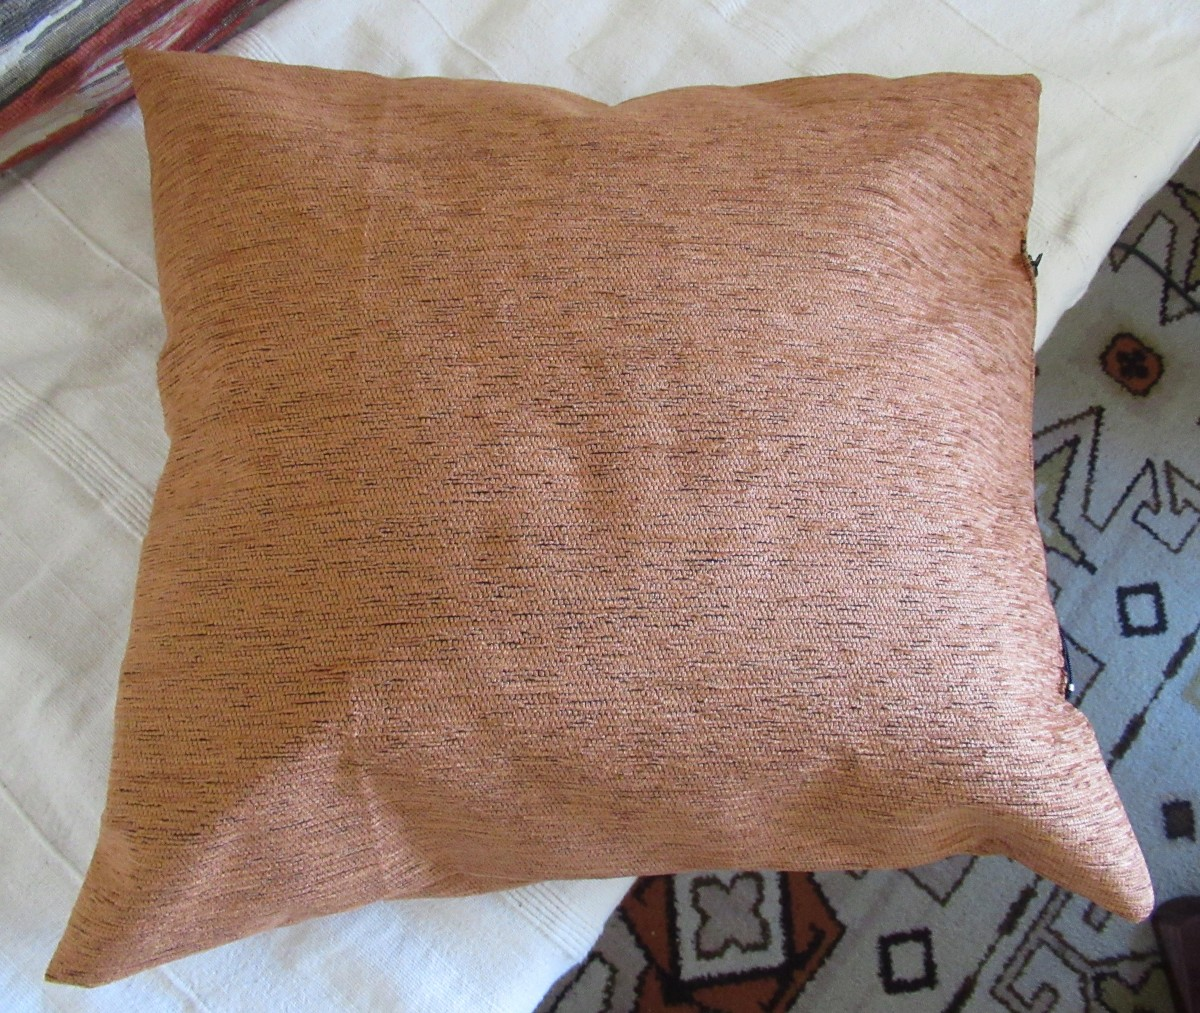 make cushions for the sitting room, out of left-over material.